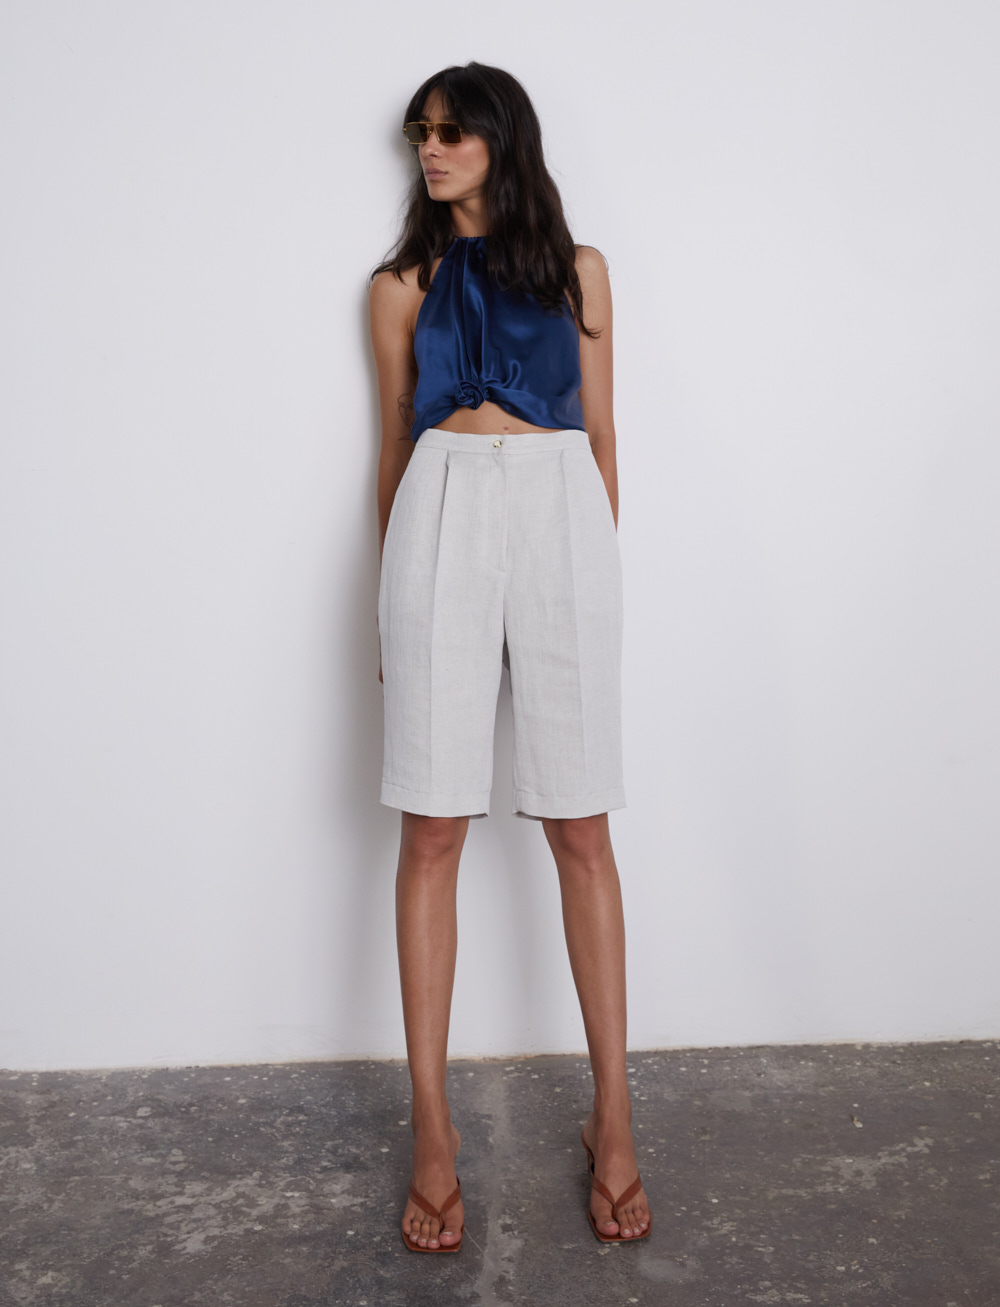 Jacqueline 2.1 Trousers by Manurí on curated-crowd.com